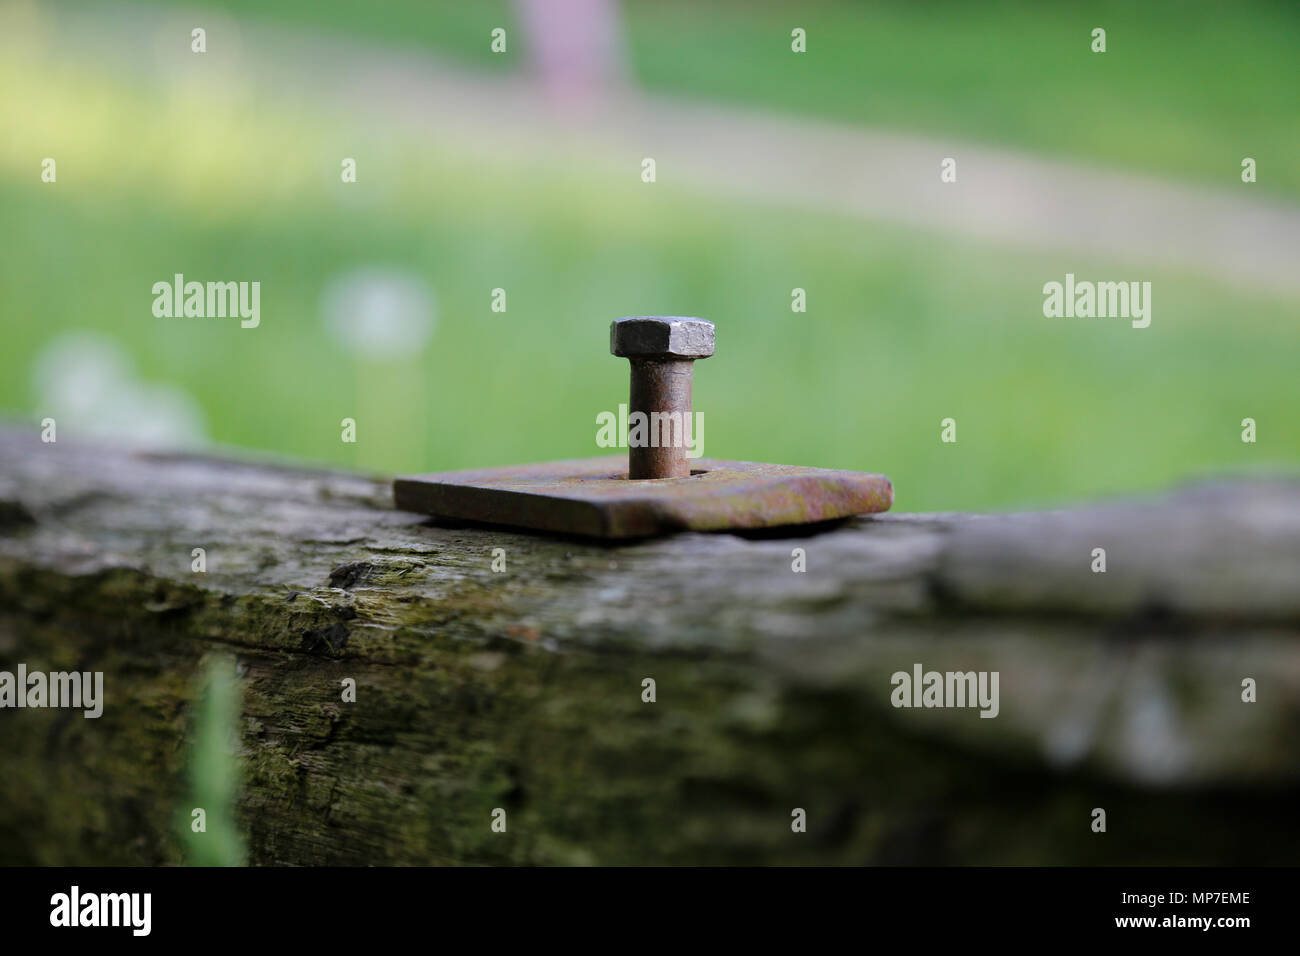 Rusty metal bolt in wooden post - Stock Image